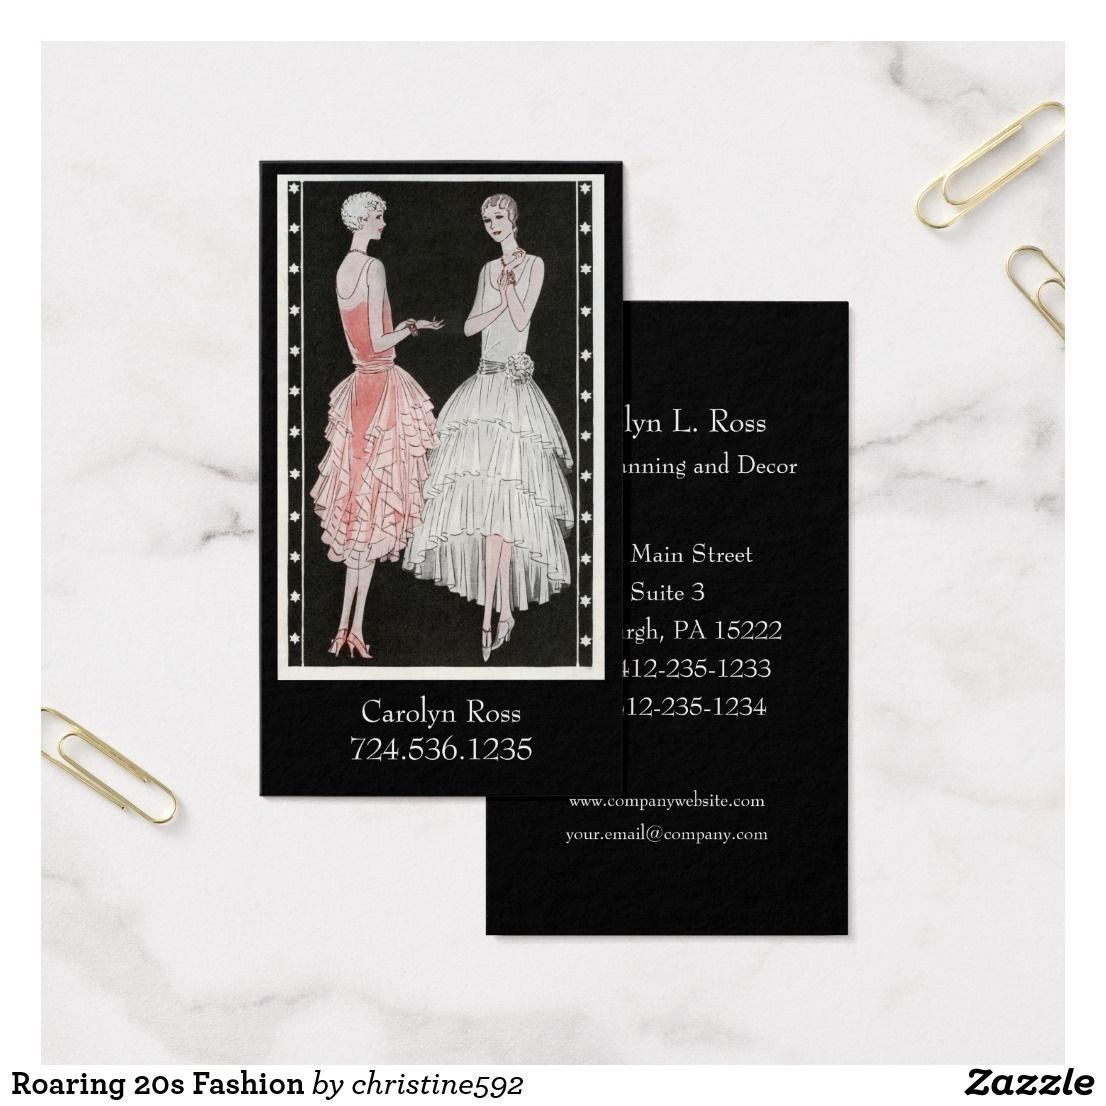 Roaring 20s fashion business card roaring 20s fashion and business roaring 20s fashion business card reheart Gallery